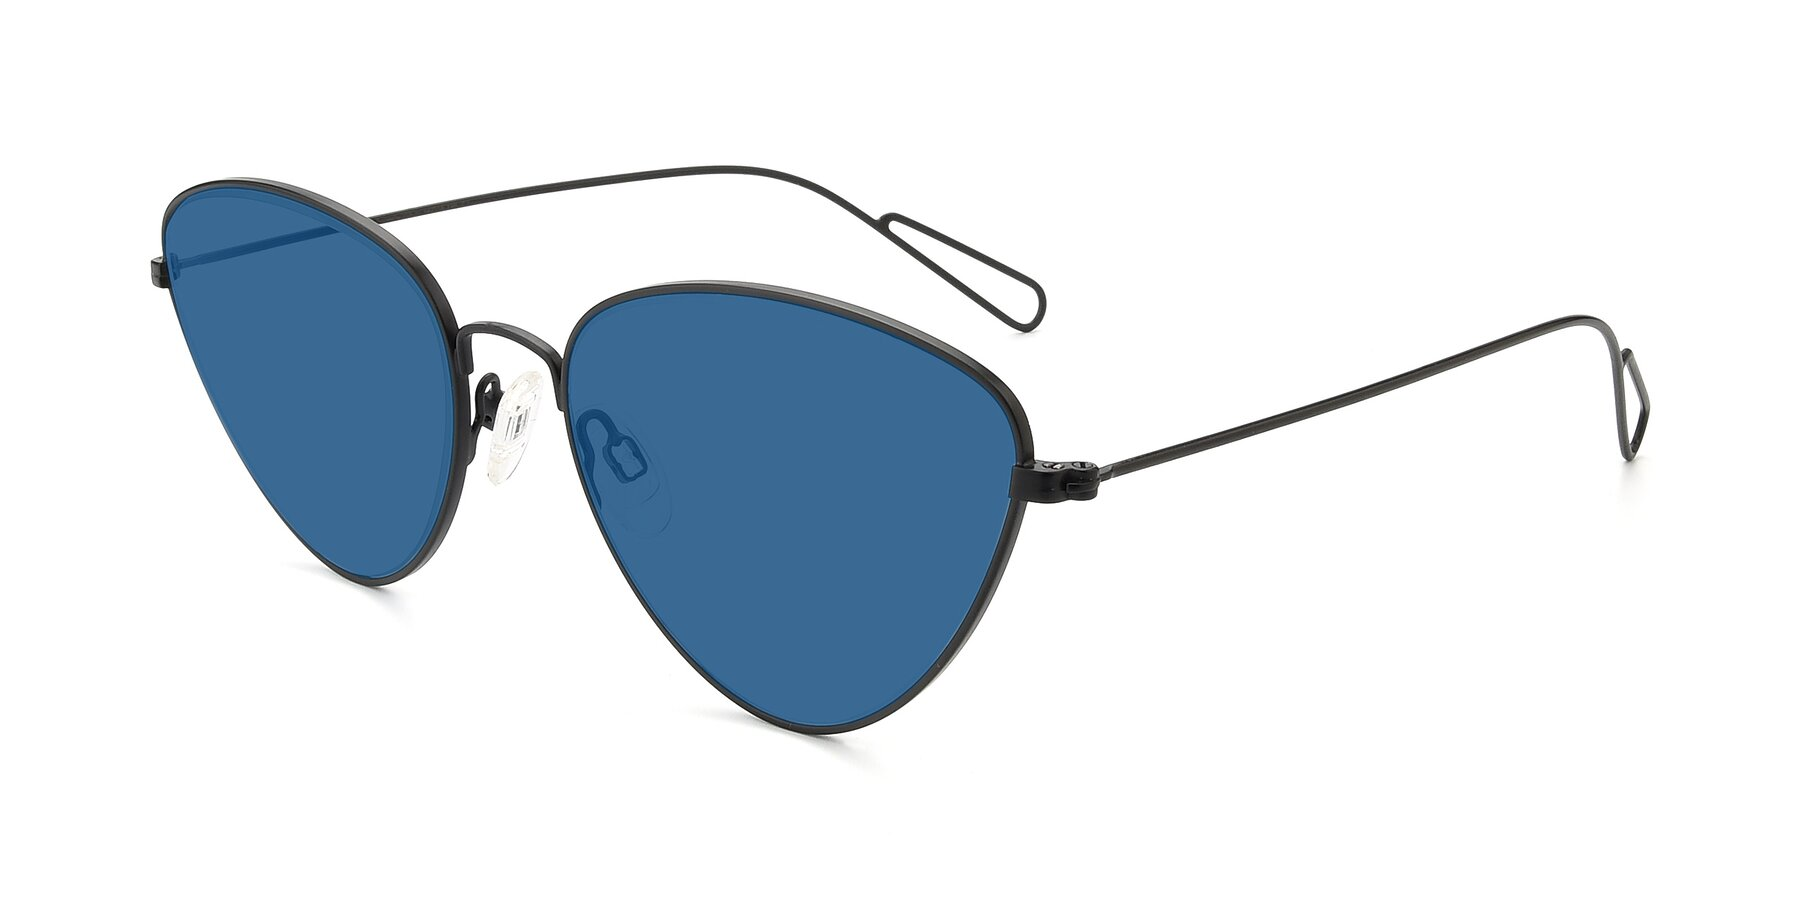 Angle of Butterfly Effect in Black with Blue Tinted Lenses